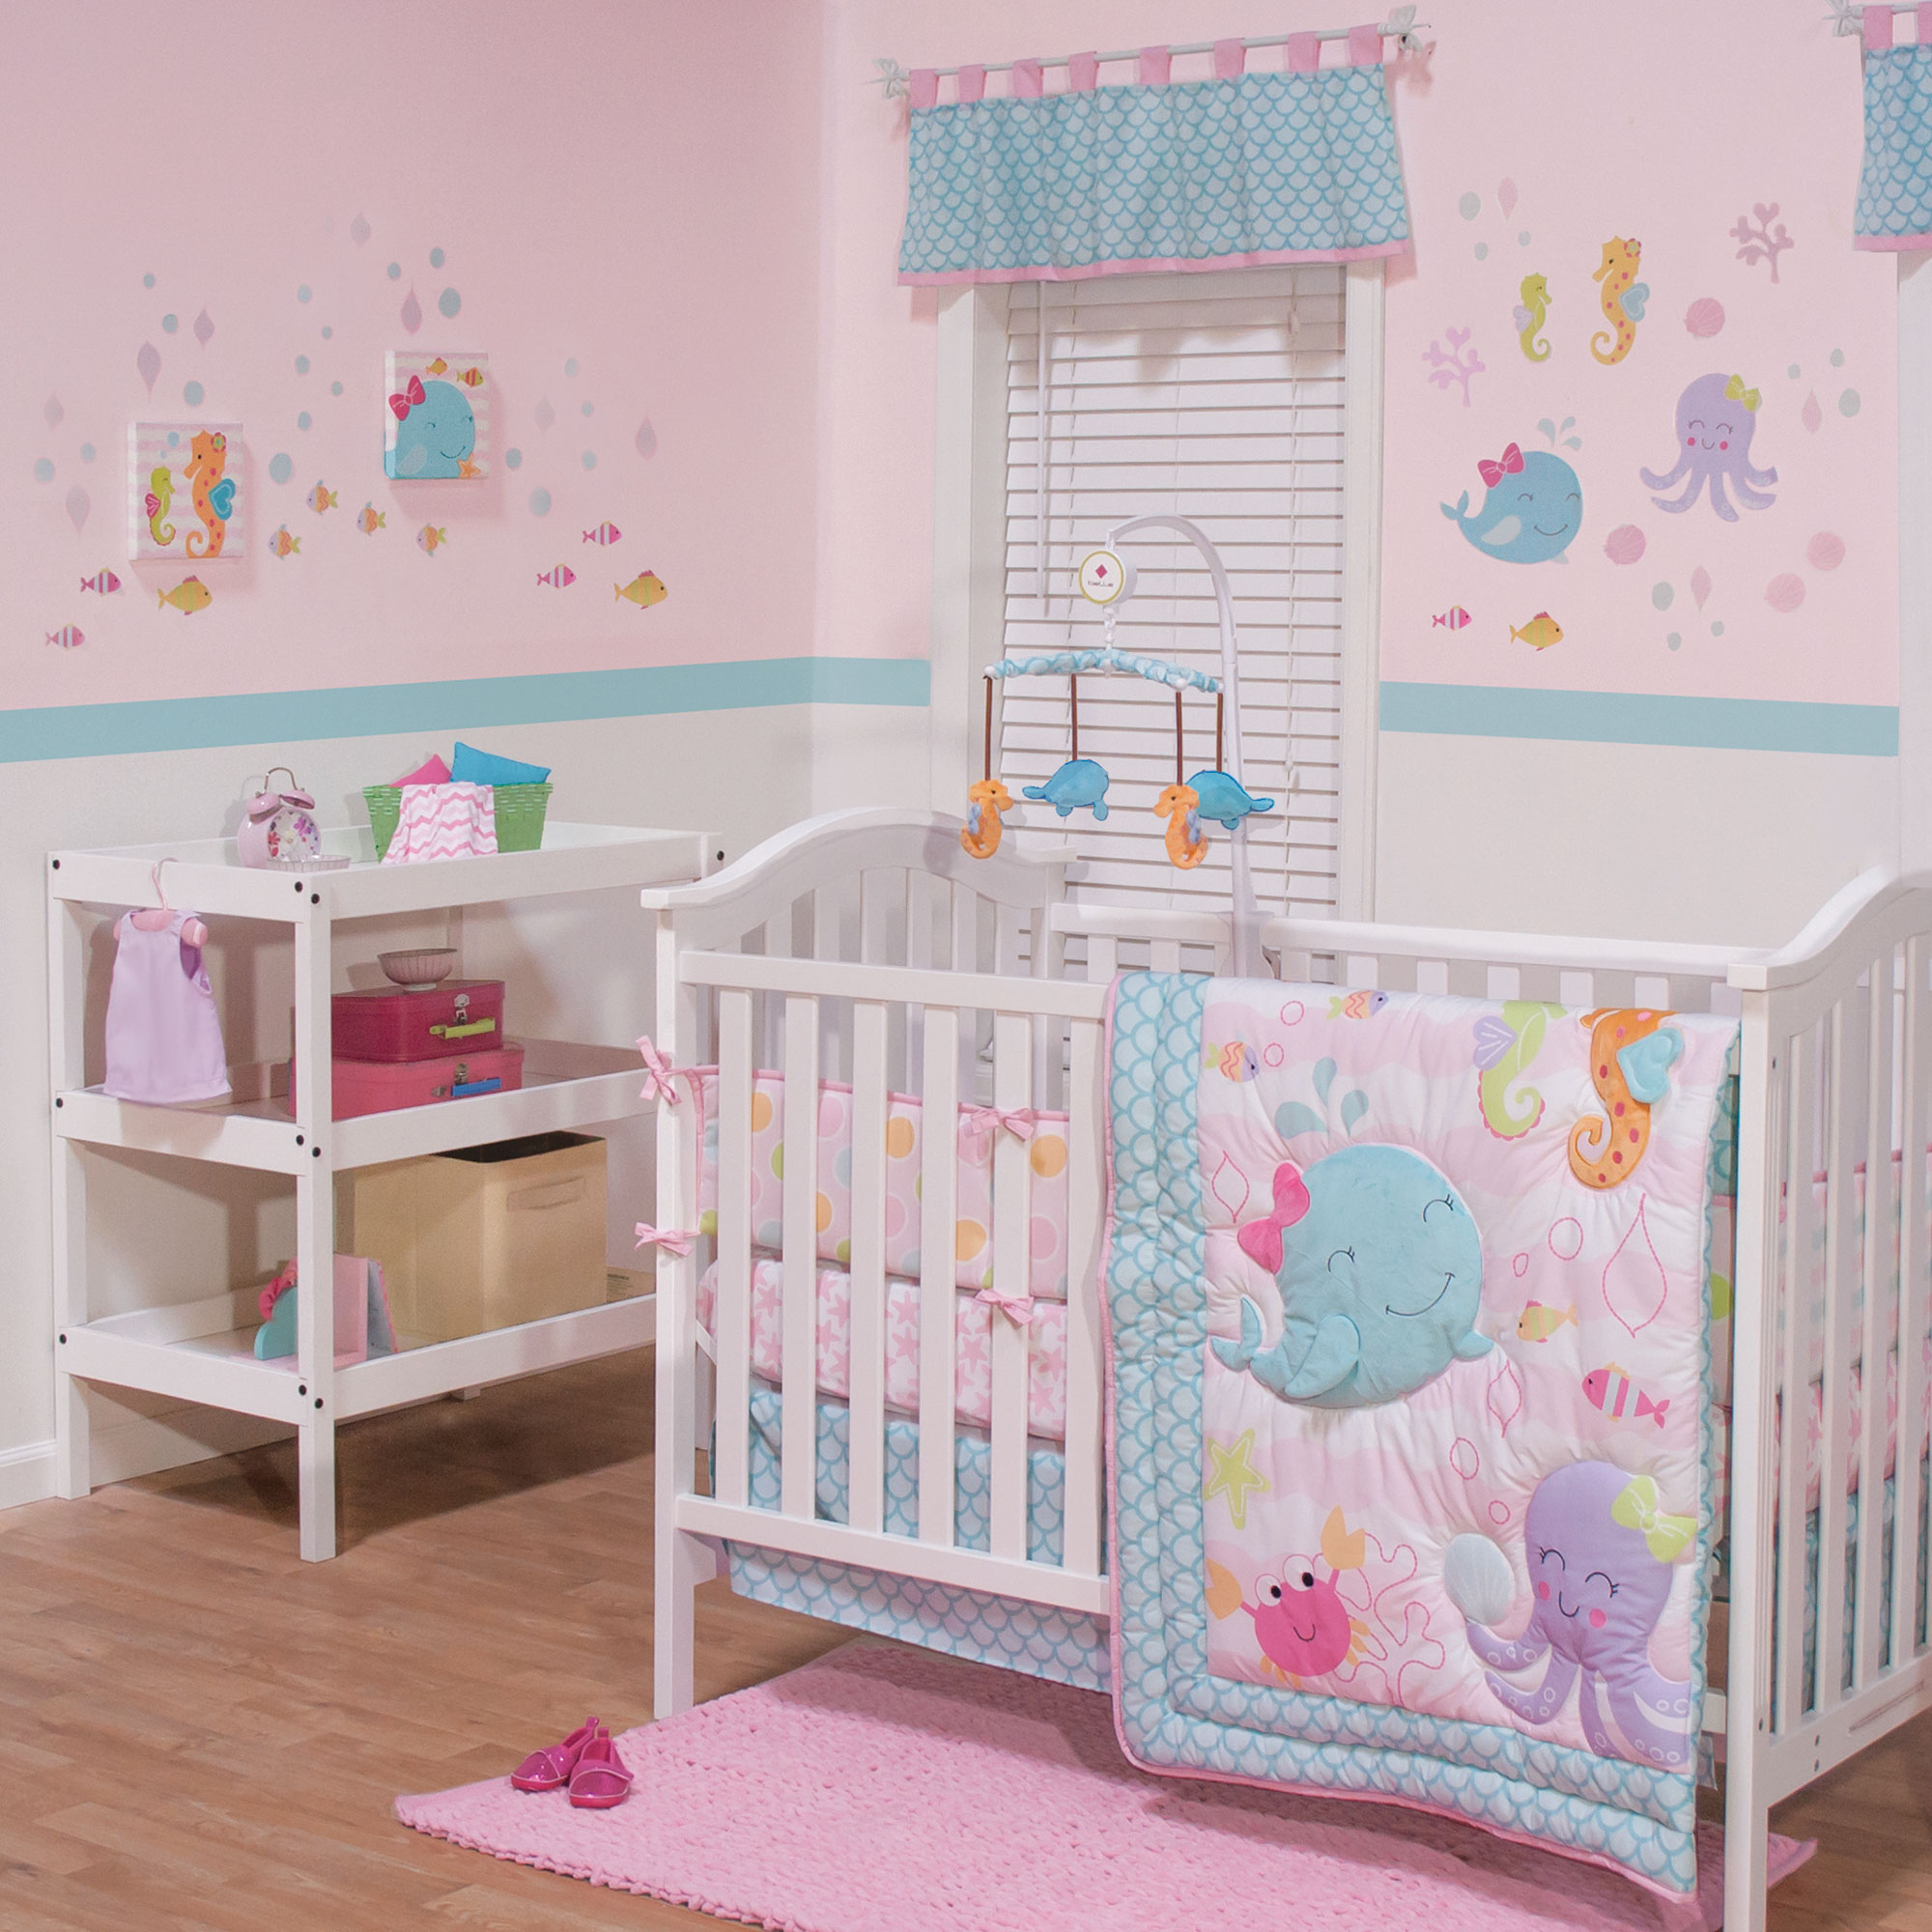 Belle Baby Girl Crib Bedding Set - Pink and Aqua Sealife Theme - Sea Sweeties 4 Piece Set with Bumper